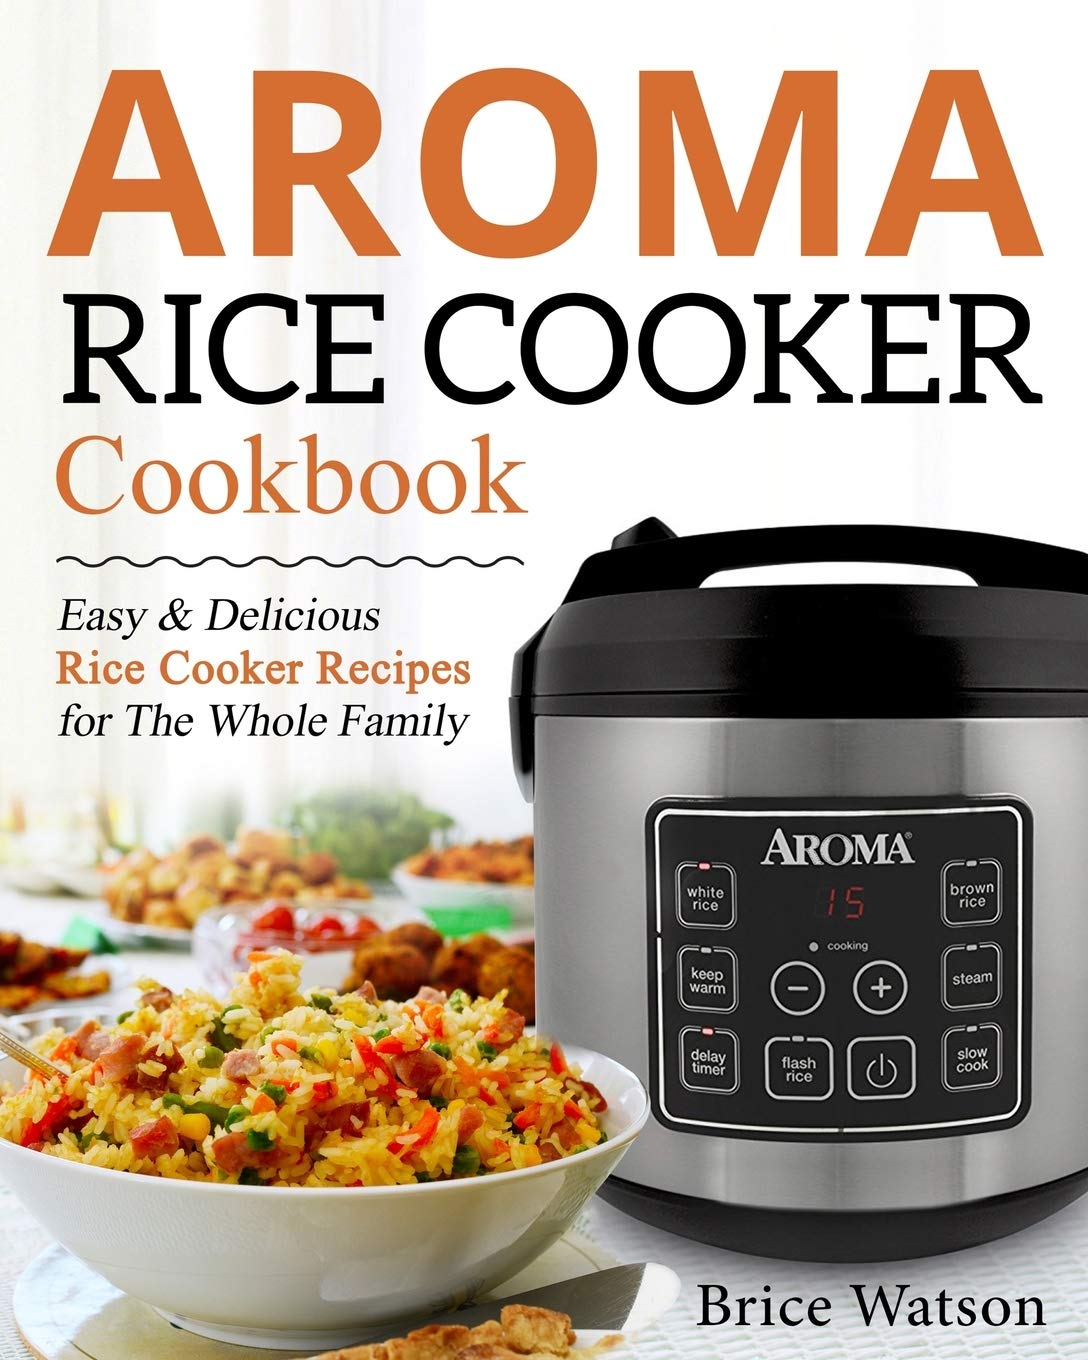 Aroma Rice Cooker Cookbook  Easy And Delicious Rice Cooker Recipes For The Whole Family